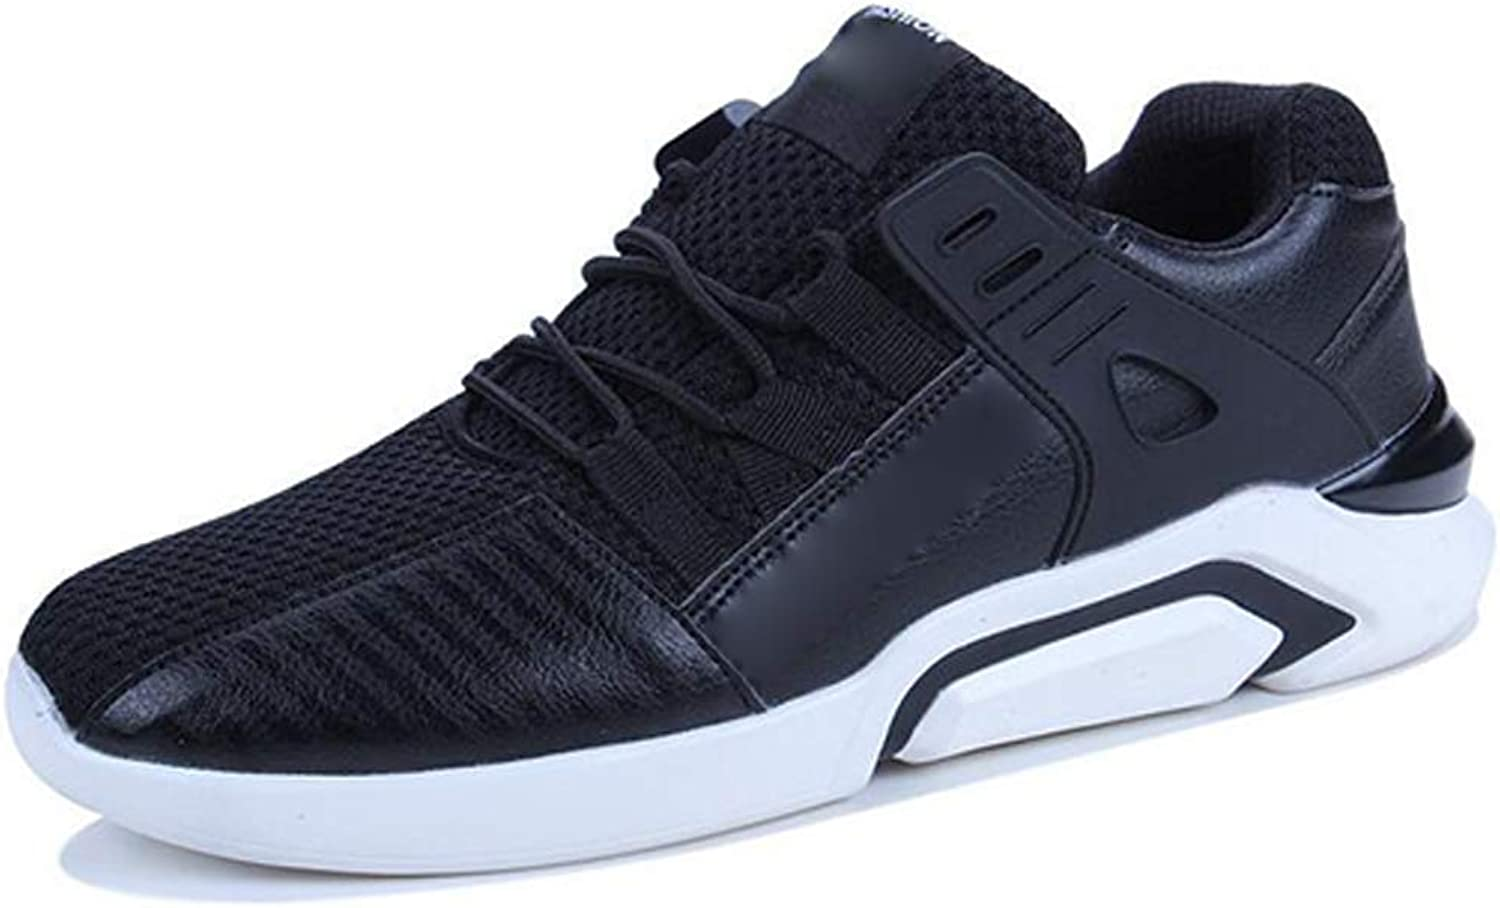 Outdoor Sneakers for Mens Men's Running shoes Outdoor Sports Casual Fashion Versatile Low Cut Breathable Three color and Multi Size (color   Black, Size   44)